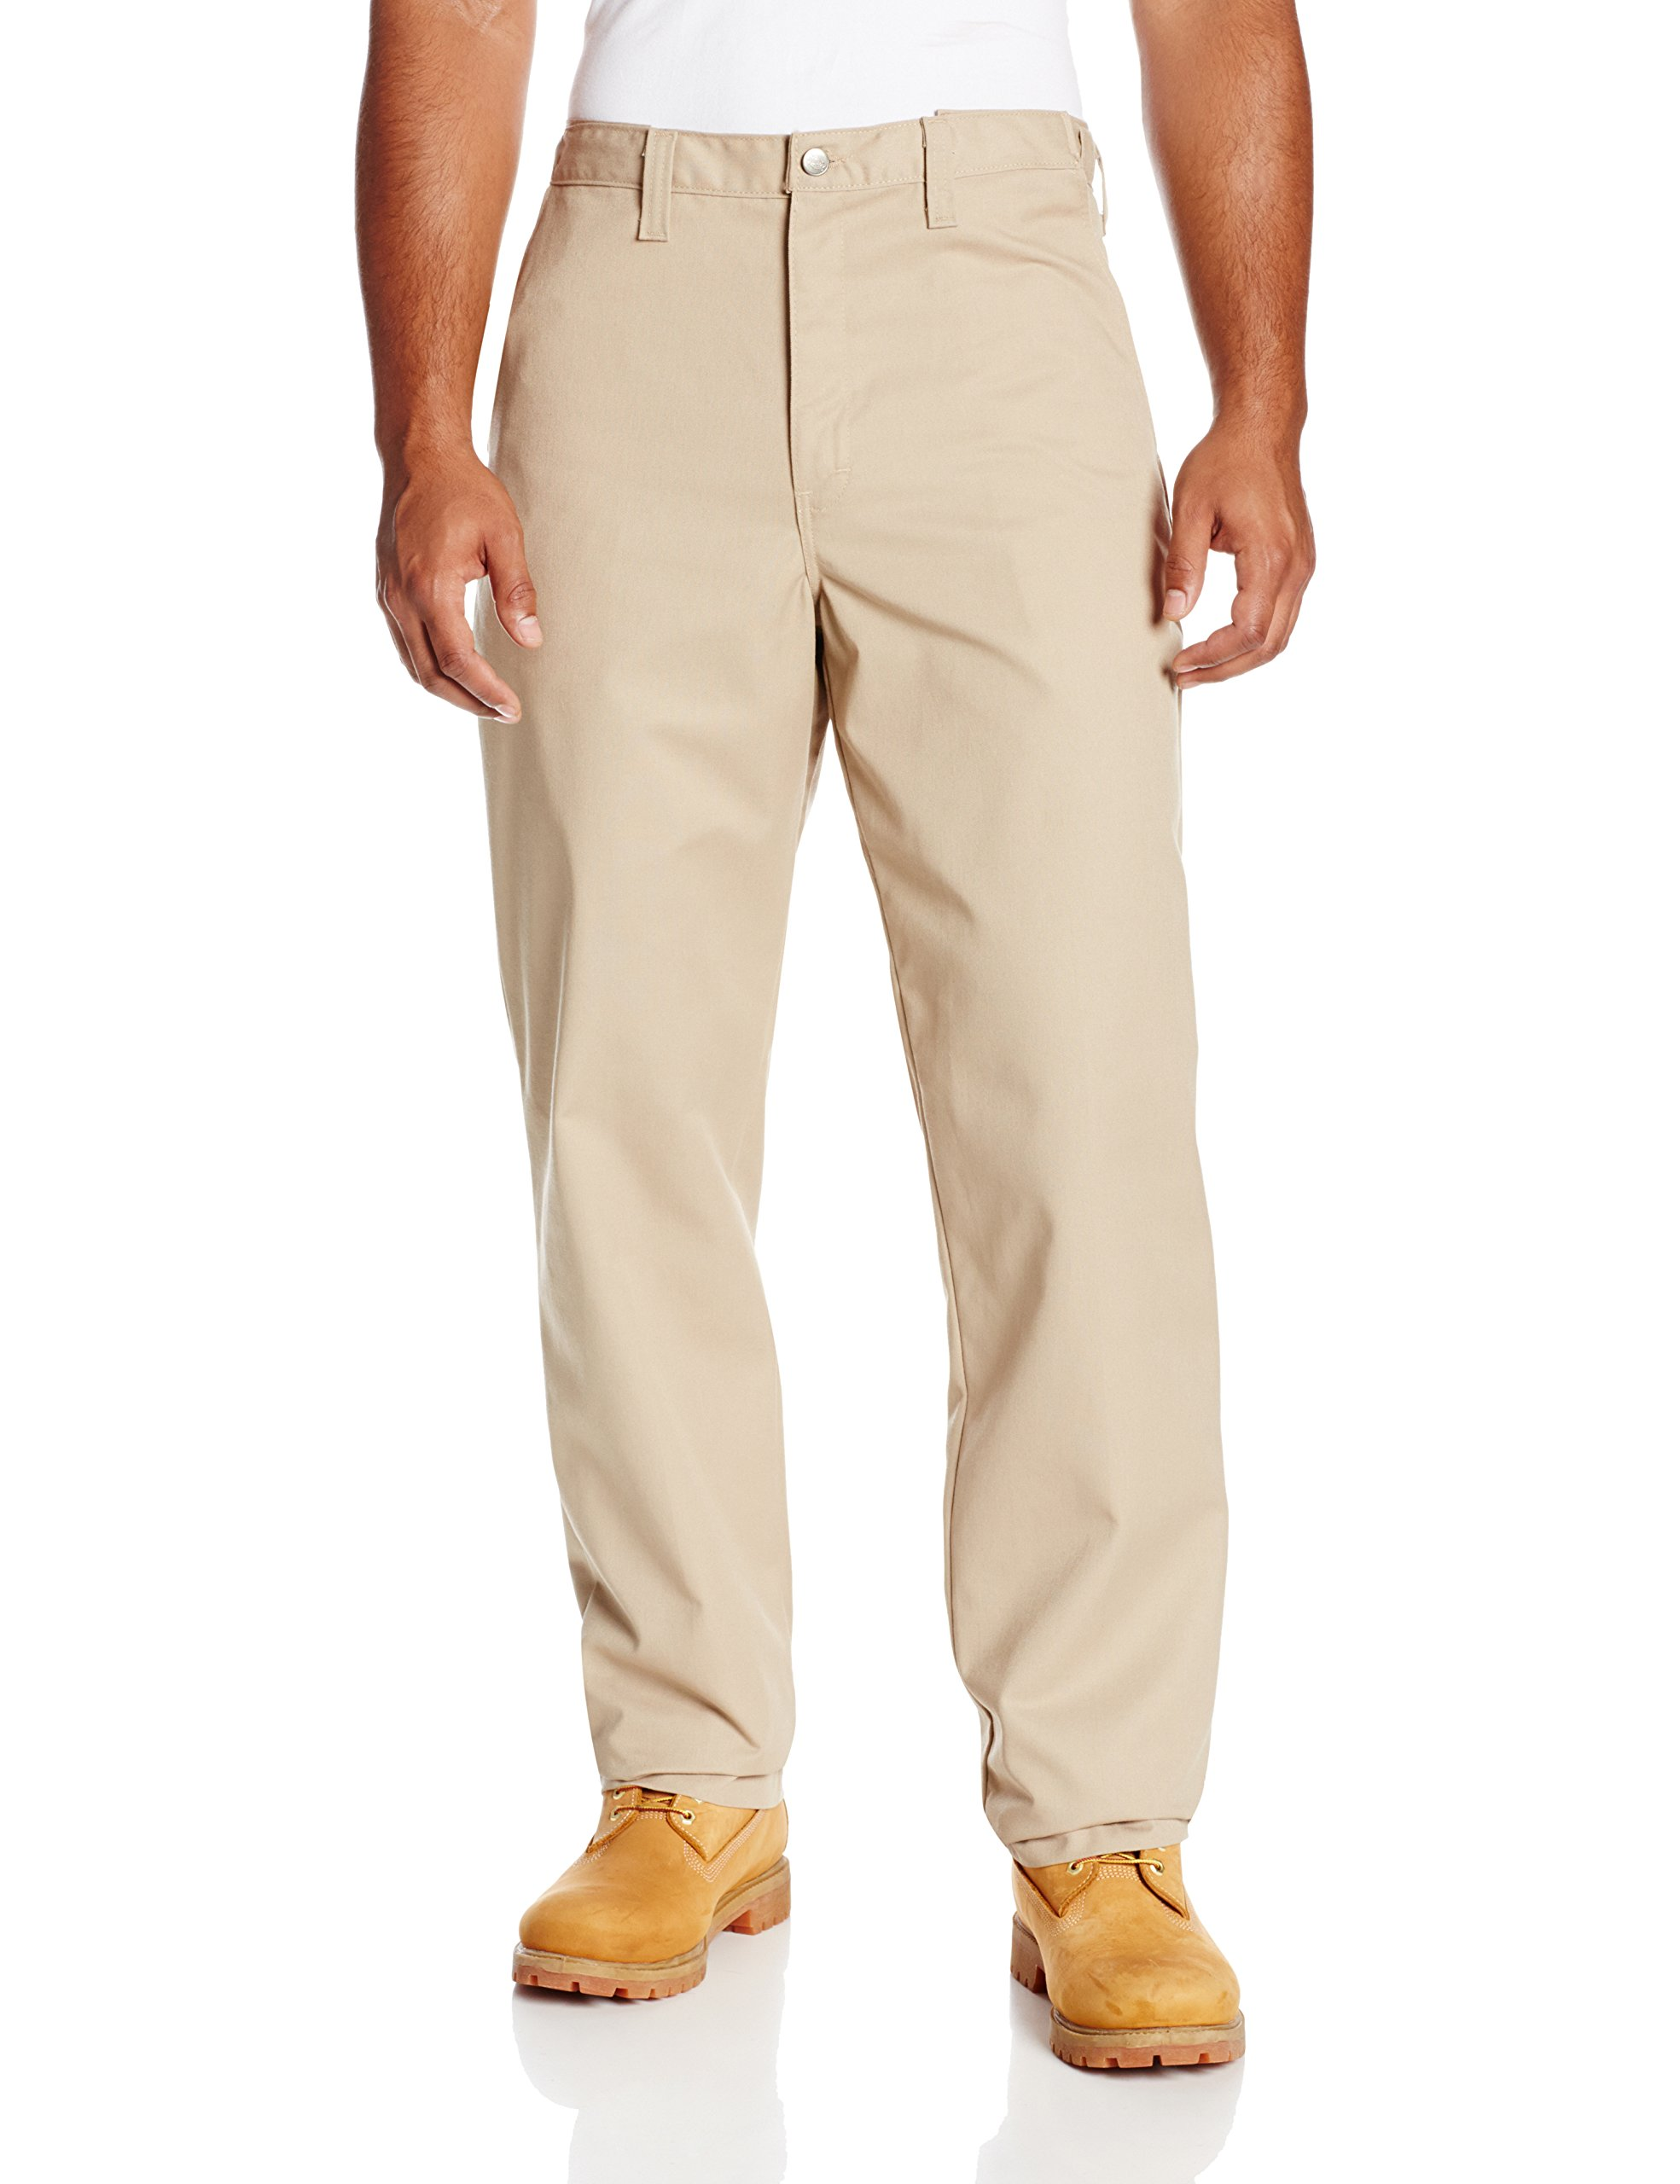 Dickies Occupational Workwear LP700DS 42x34 Polyester/ Cotton Relaxed Fit Men's Premium Industrial Flat Front Comfort Waist Pant with Straight Leg, 42'' Waist Size, 34'' Inseam, Desert Sand